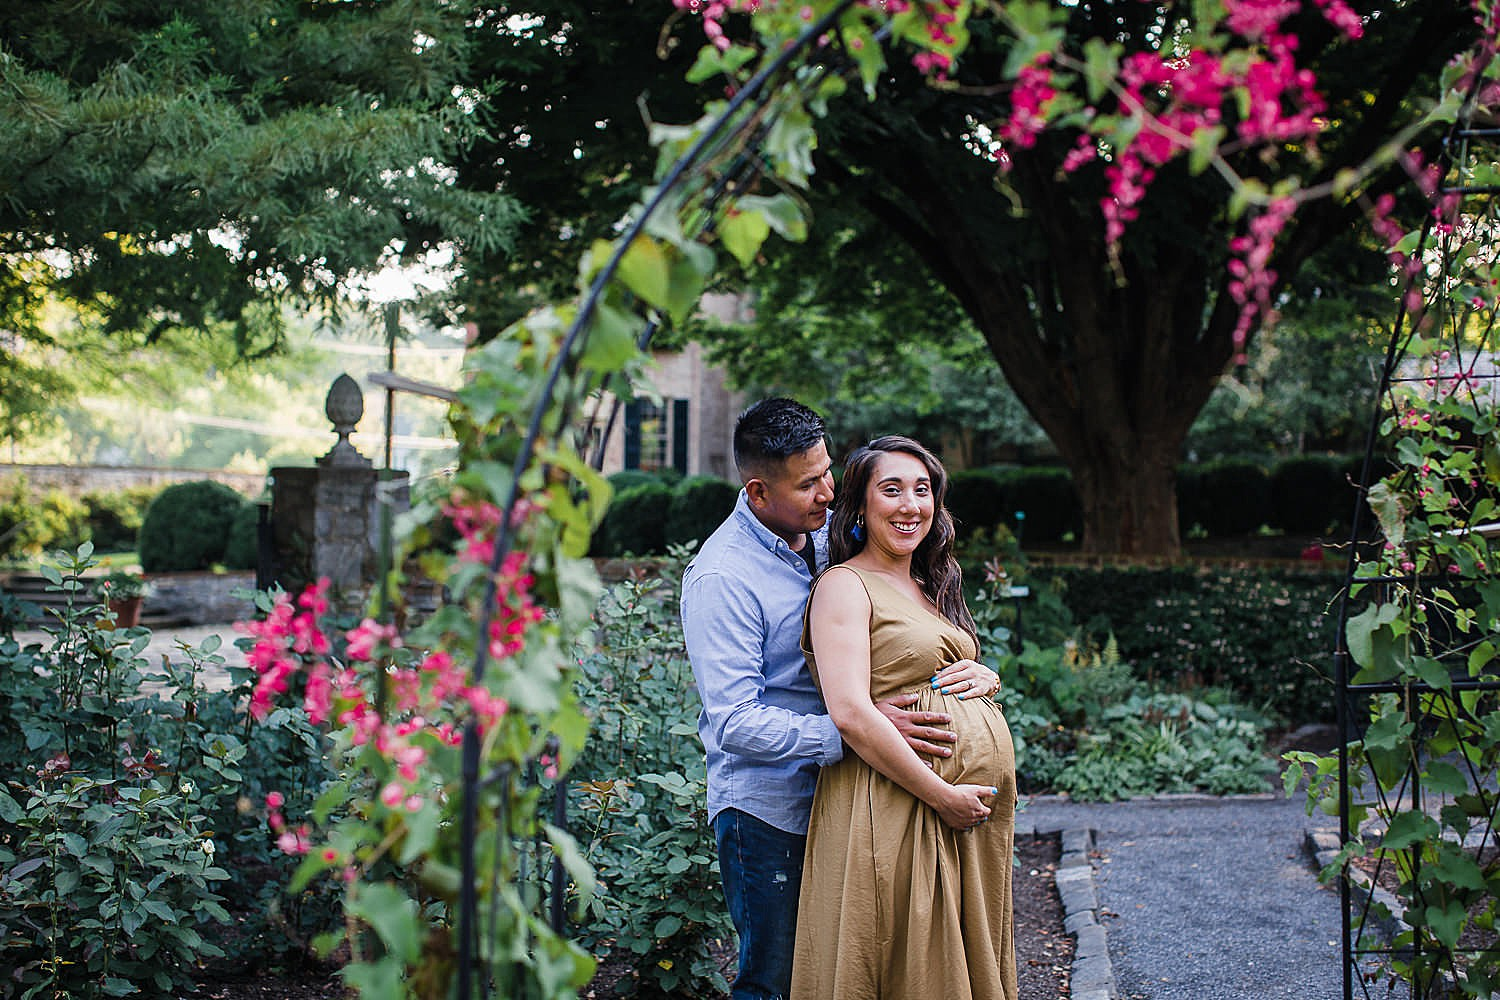 Conestoga House and Gardens Summer Maternity Session in Lancaster PA